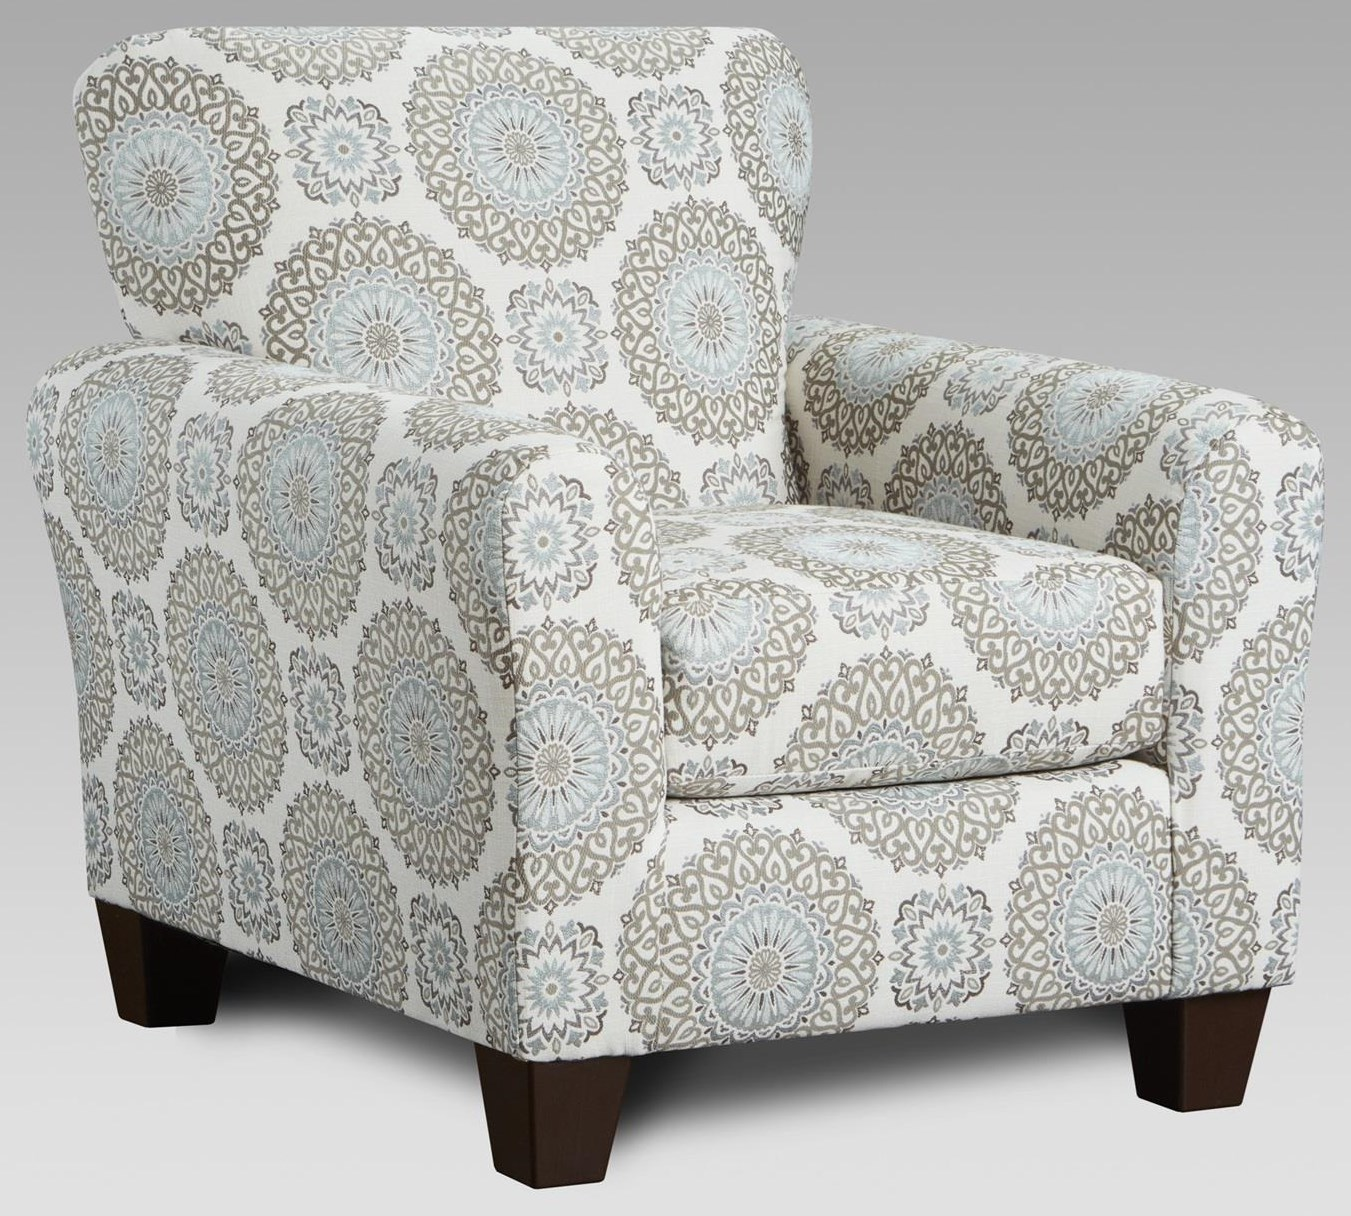 3440 Upholstered Accent Chair by Affordable Furniture at Furniture Fair - North Carolina